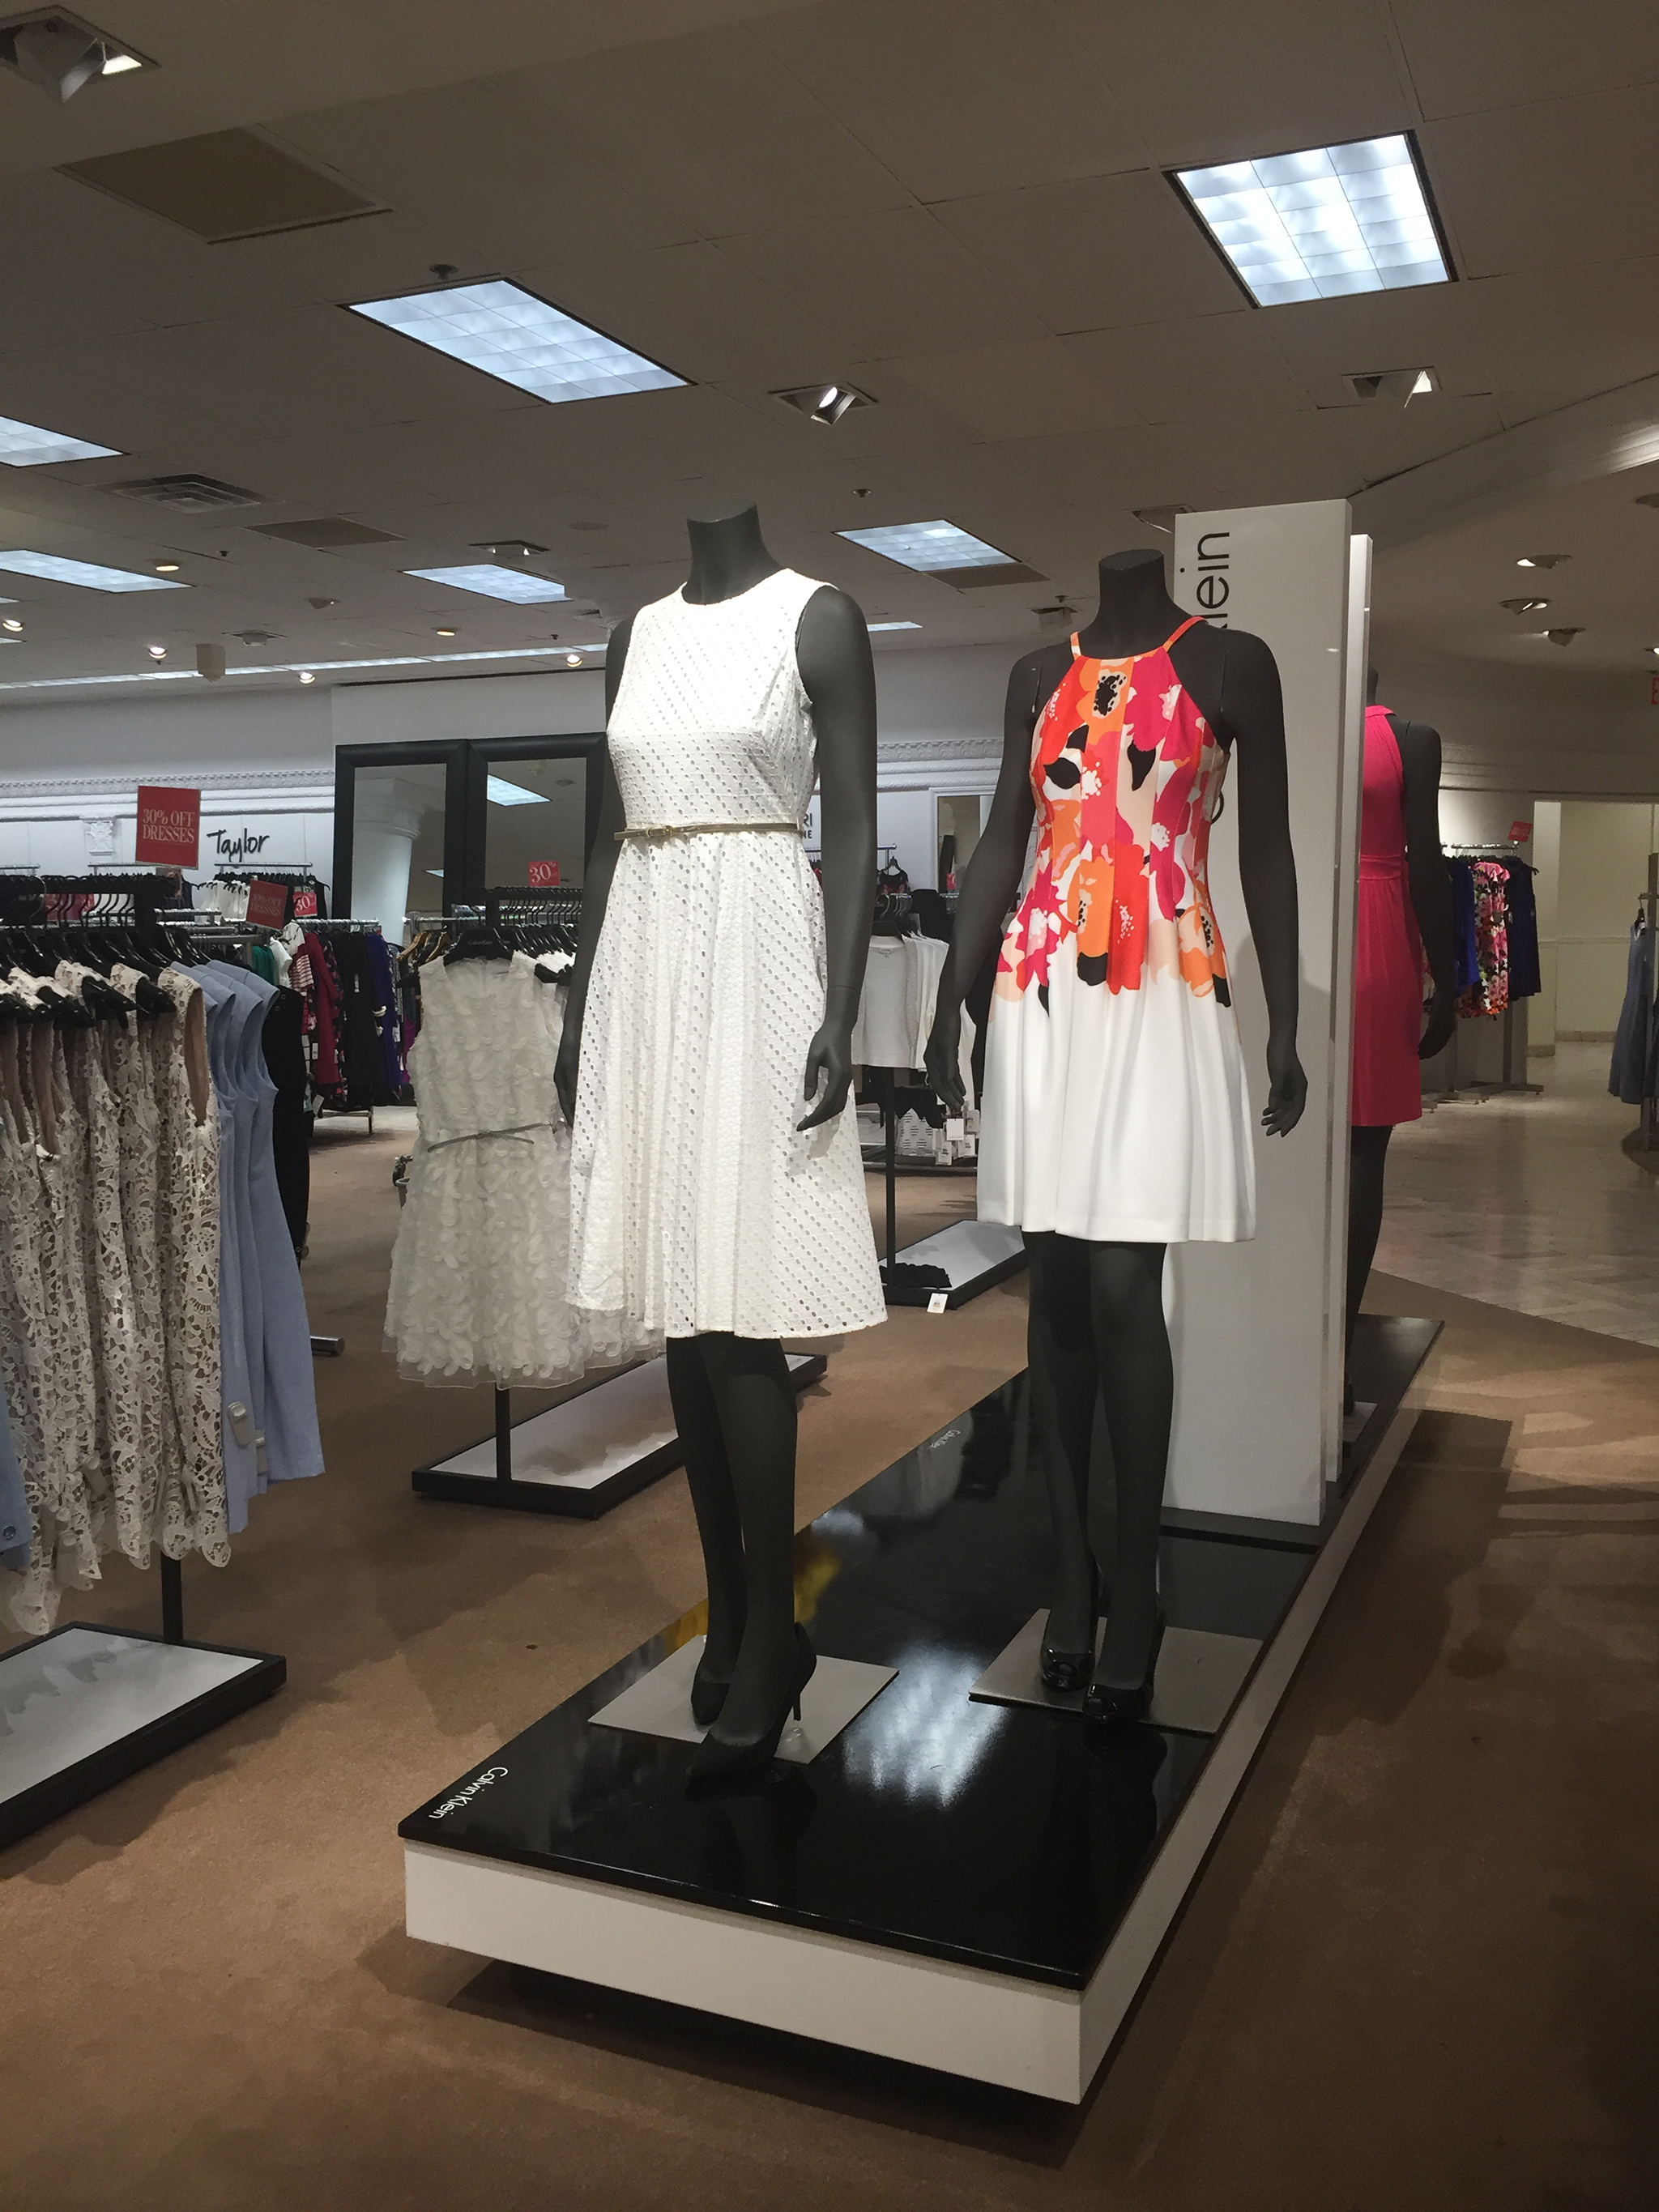 Lord-Taylor-NYC-Store-Spring16-10